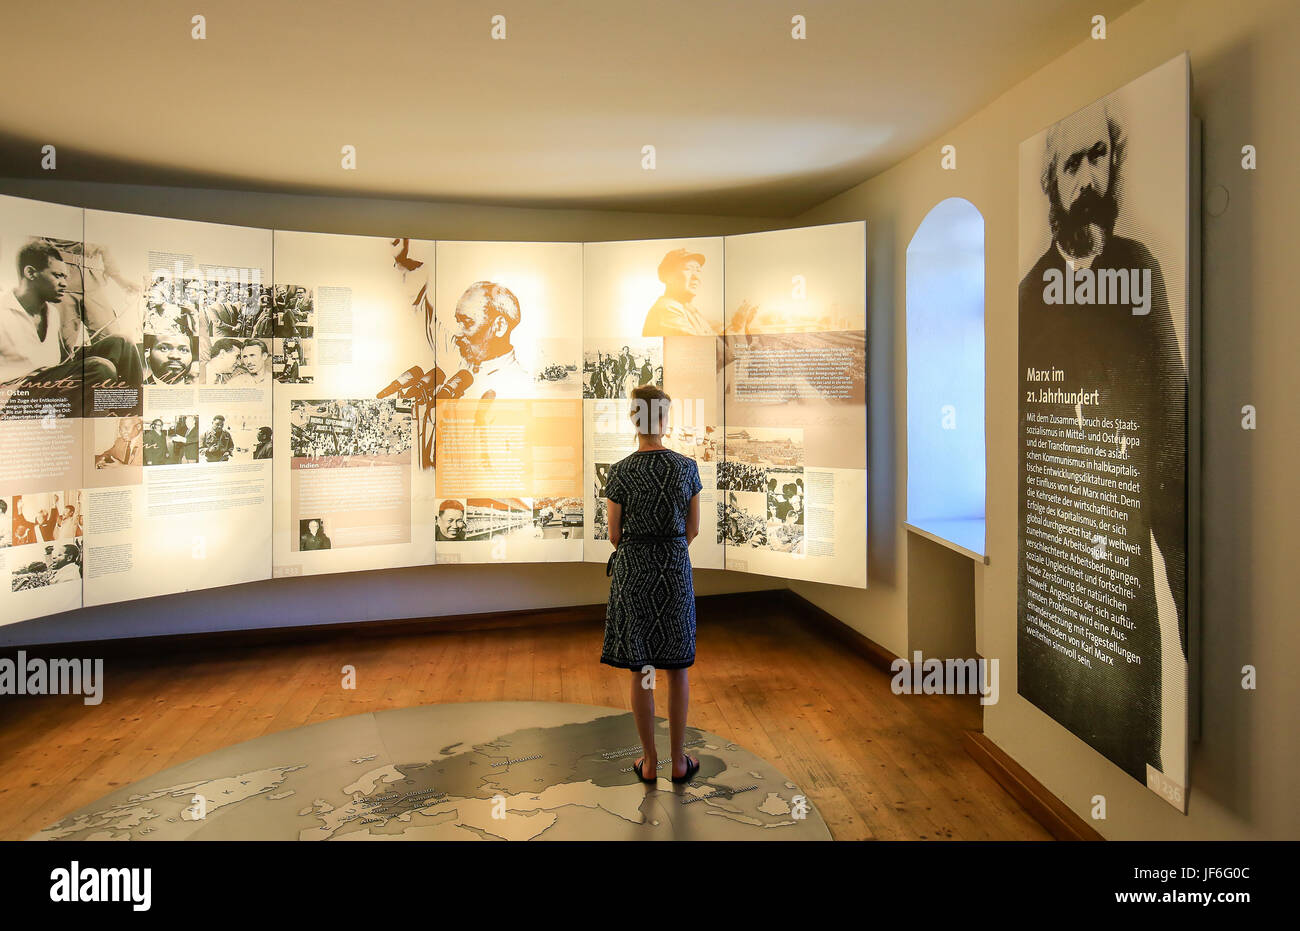 Exhibition room in the Karl-Marx-Haus, birthplace of Karl Marx, Trier, Rhineland-Palatinate, Germany, Europe, Ausstellungsraum - Stock Image